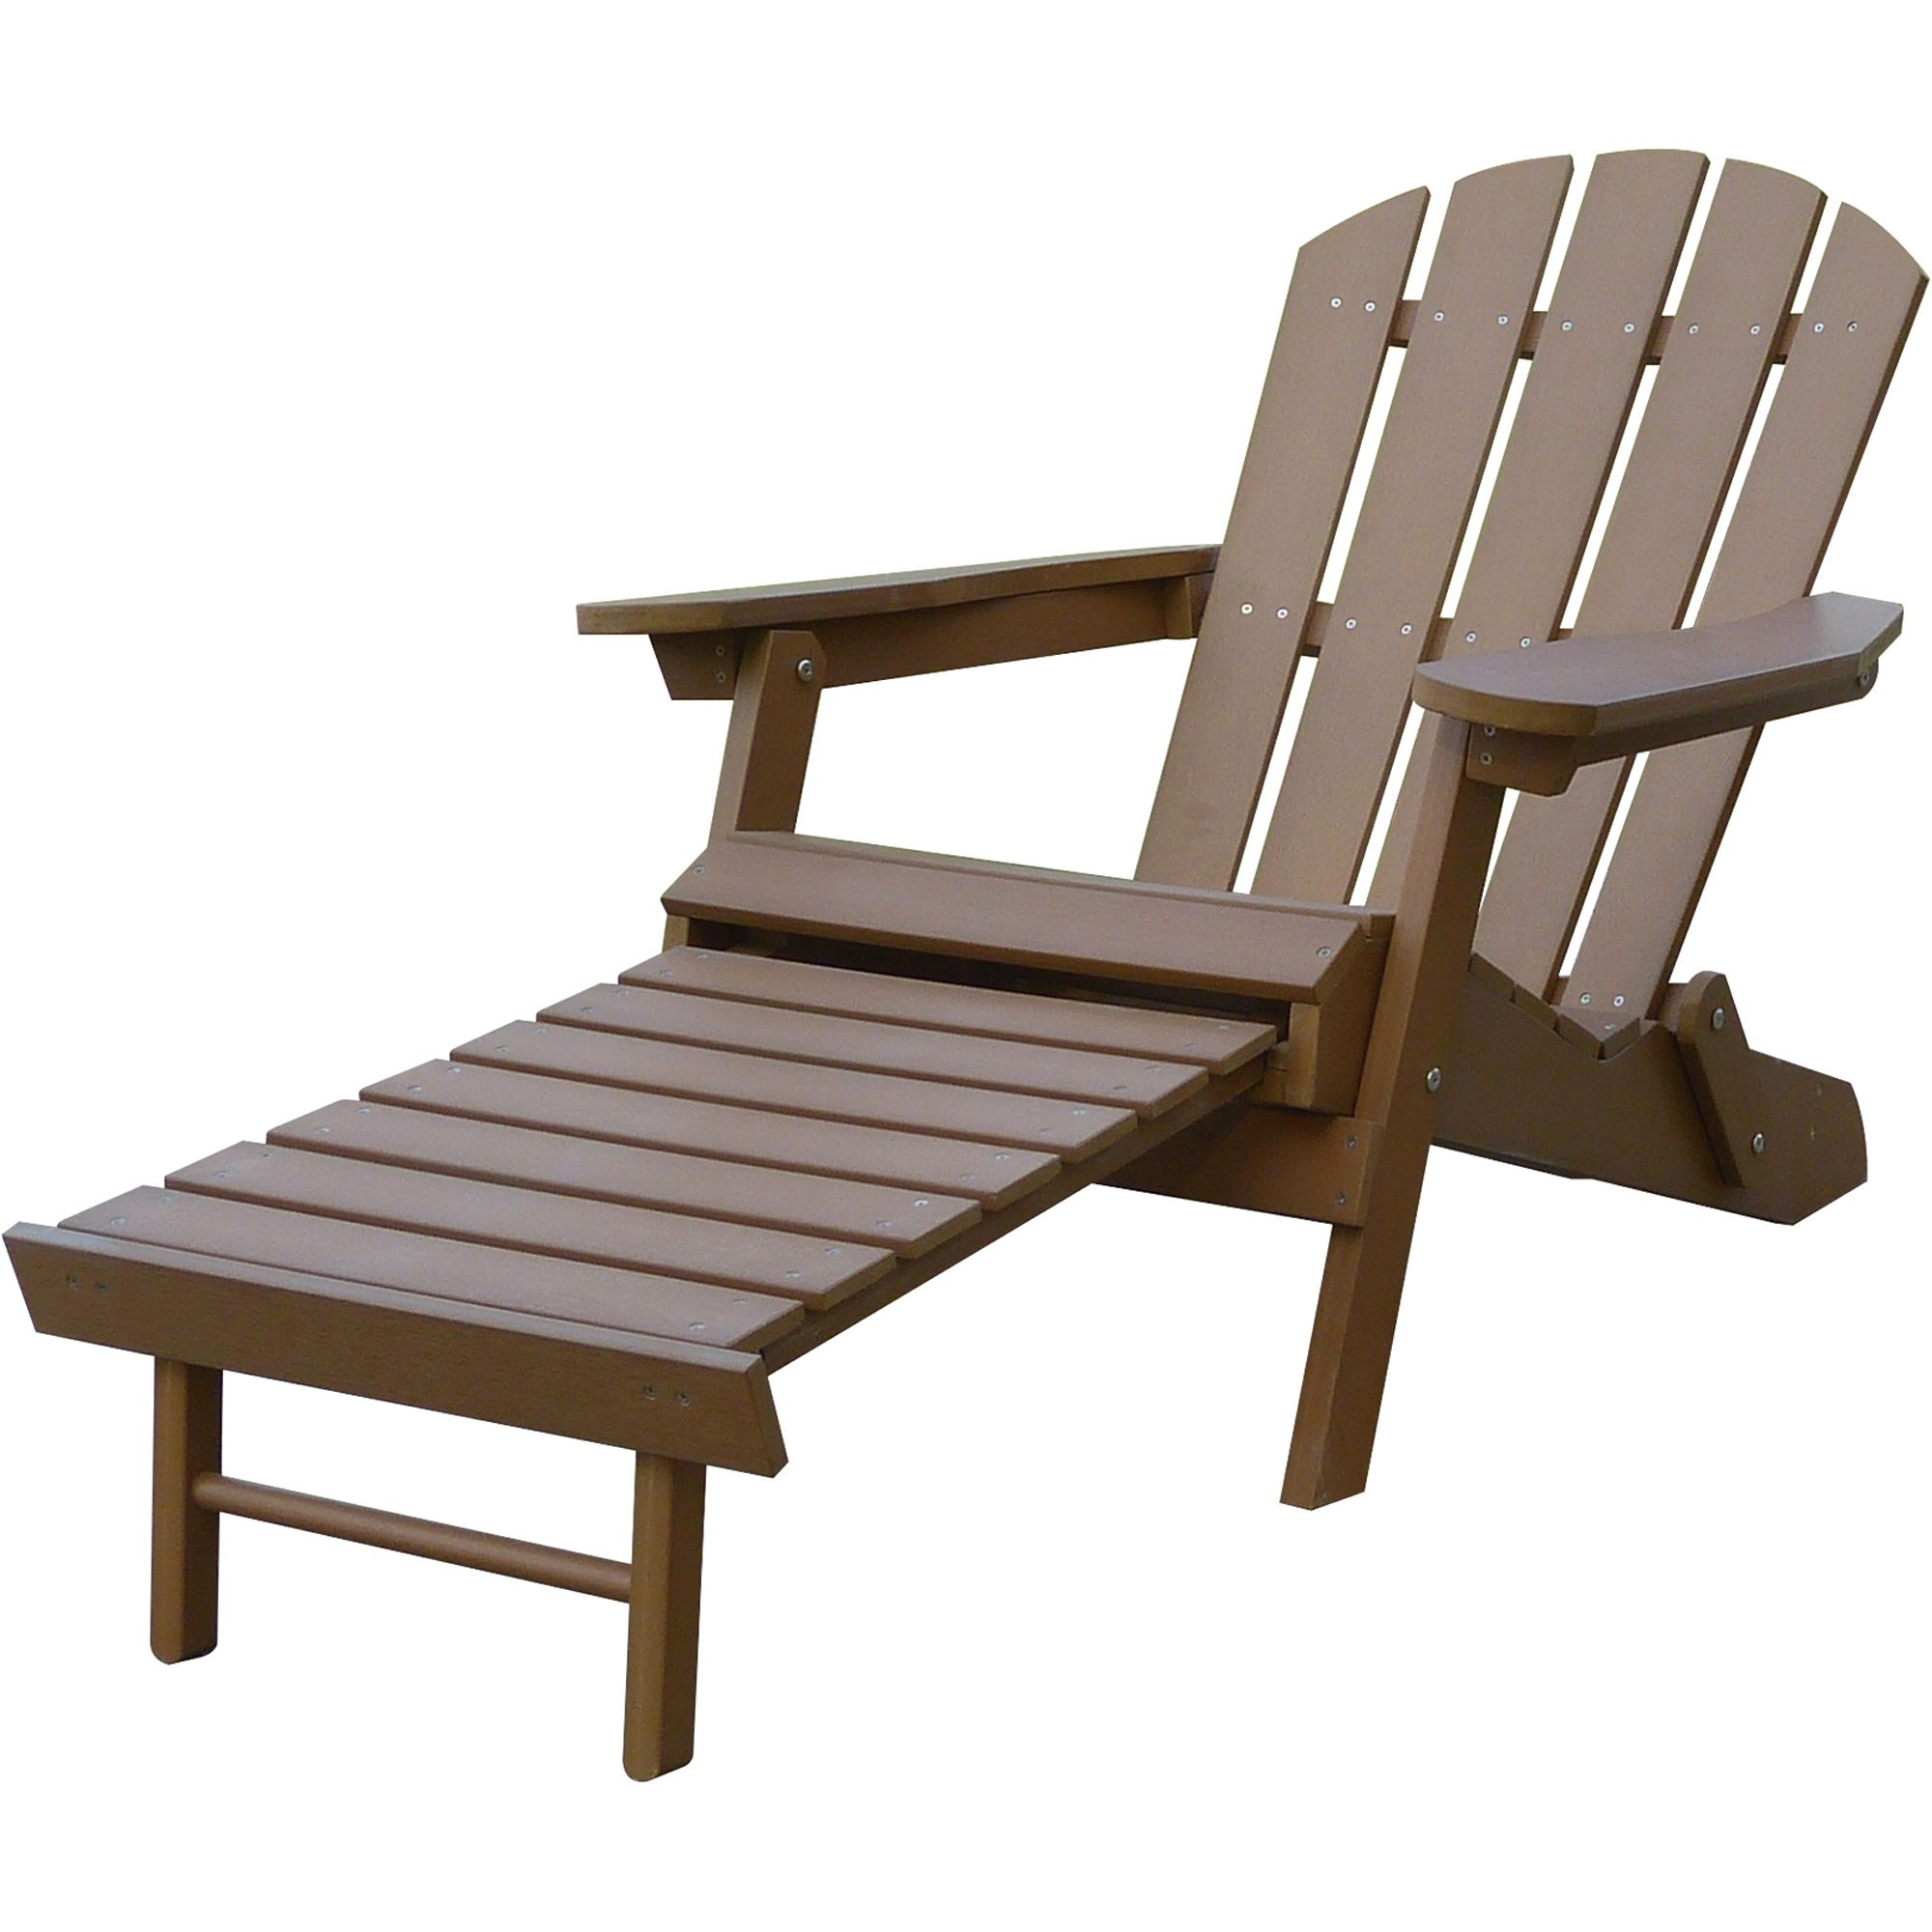 Stupendous Stonegate Designs Resin Adirondack Chair With Built In Machost Co Dining Chair Design Ideas Machostcouk